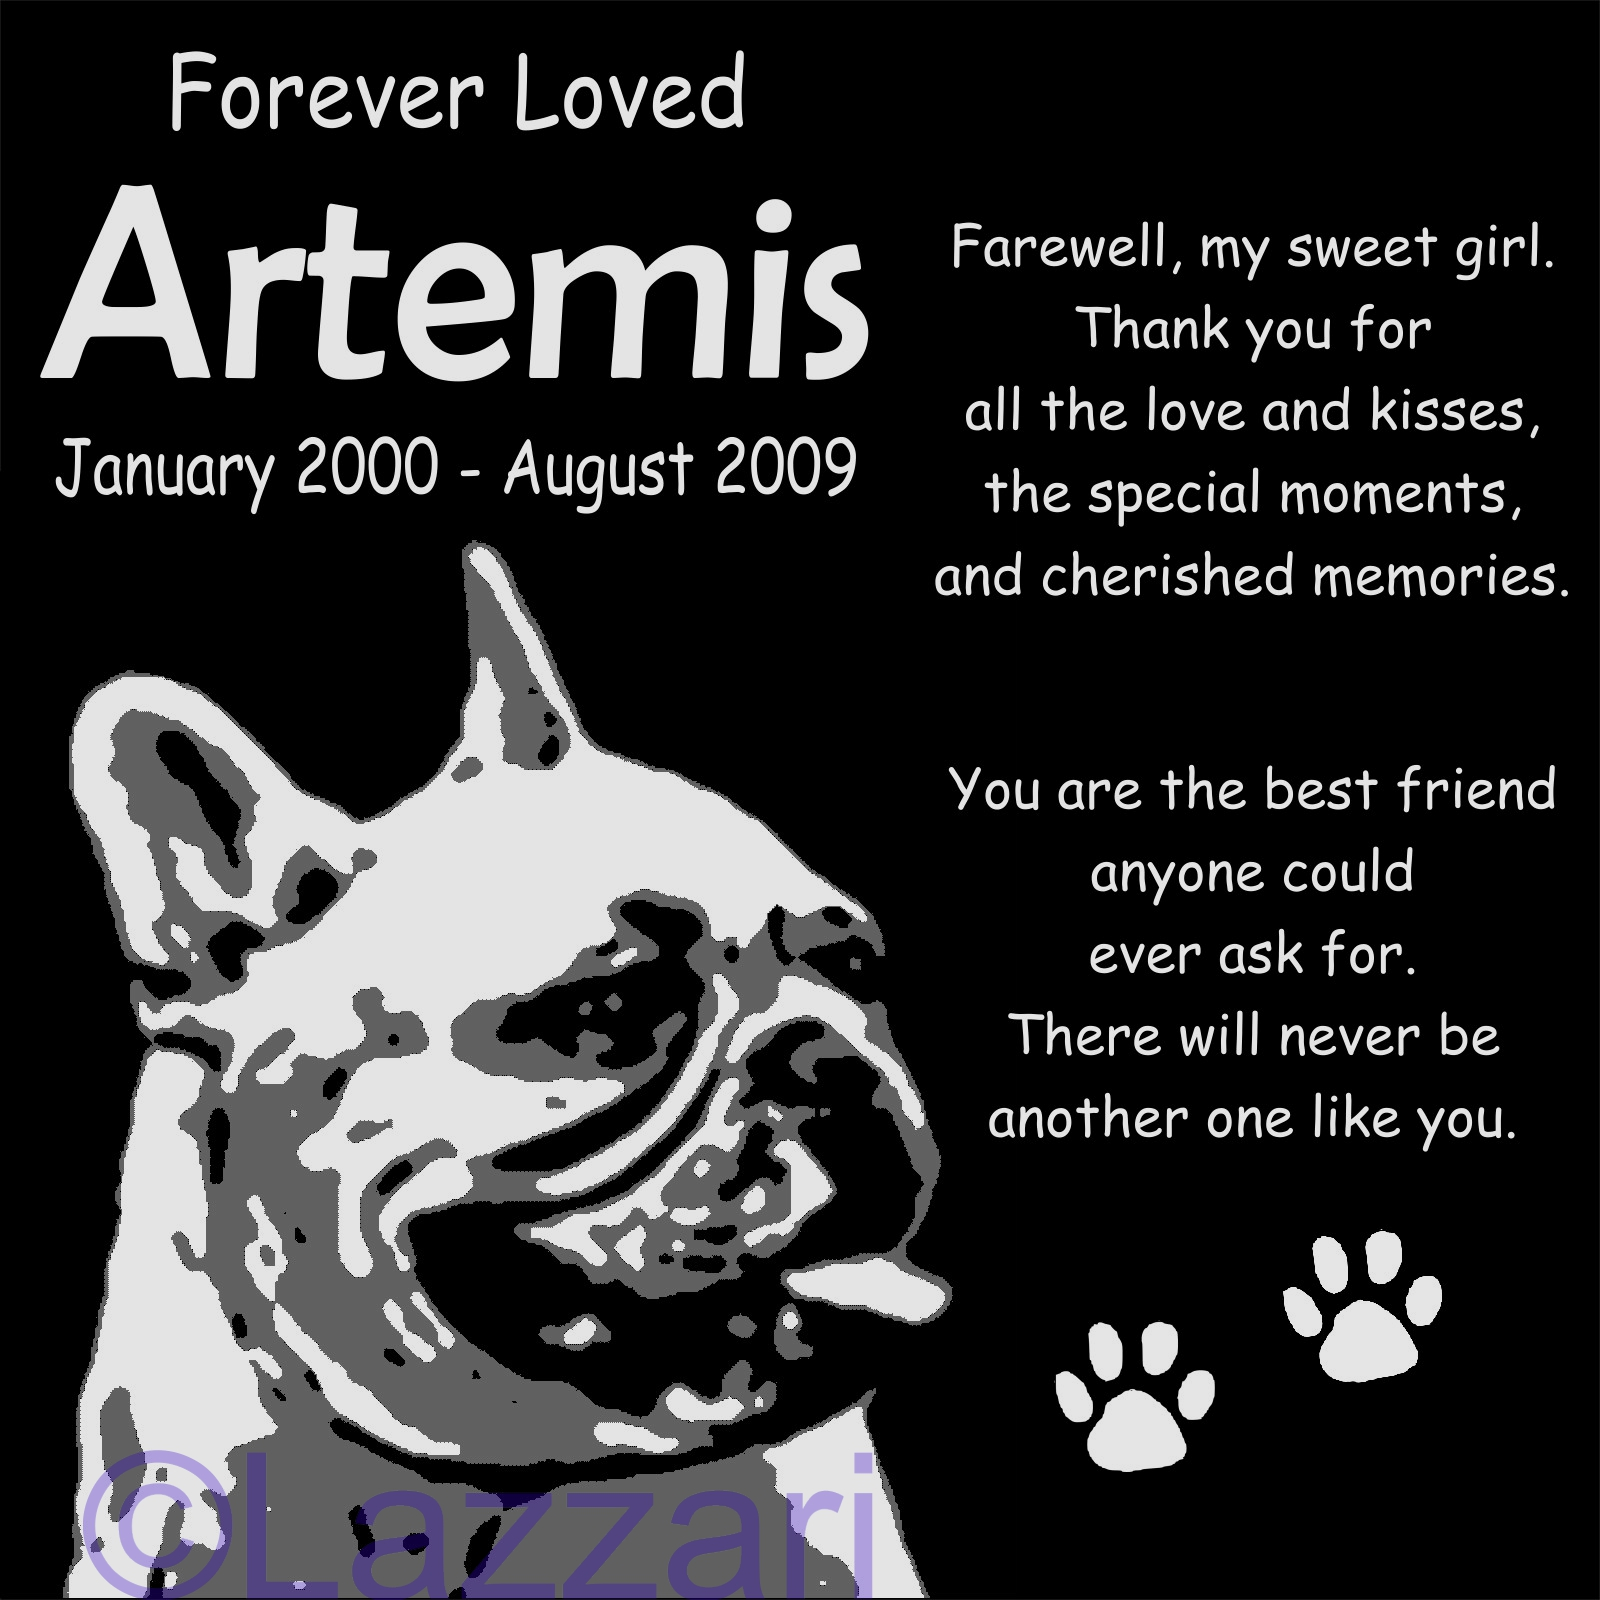 Details About Personalized French Bulldog Pet Memorial 12x12 Customized Granite Grave Marker B